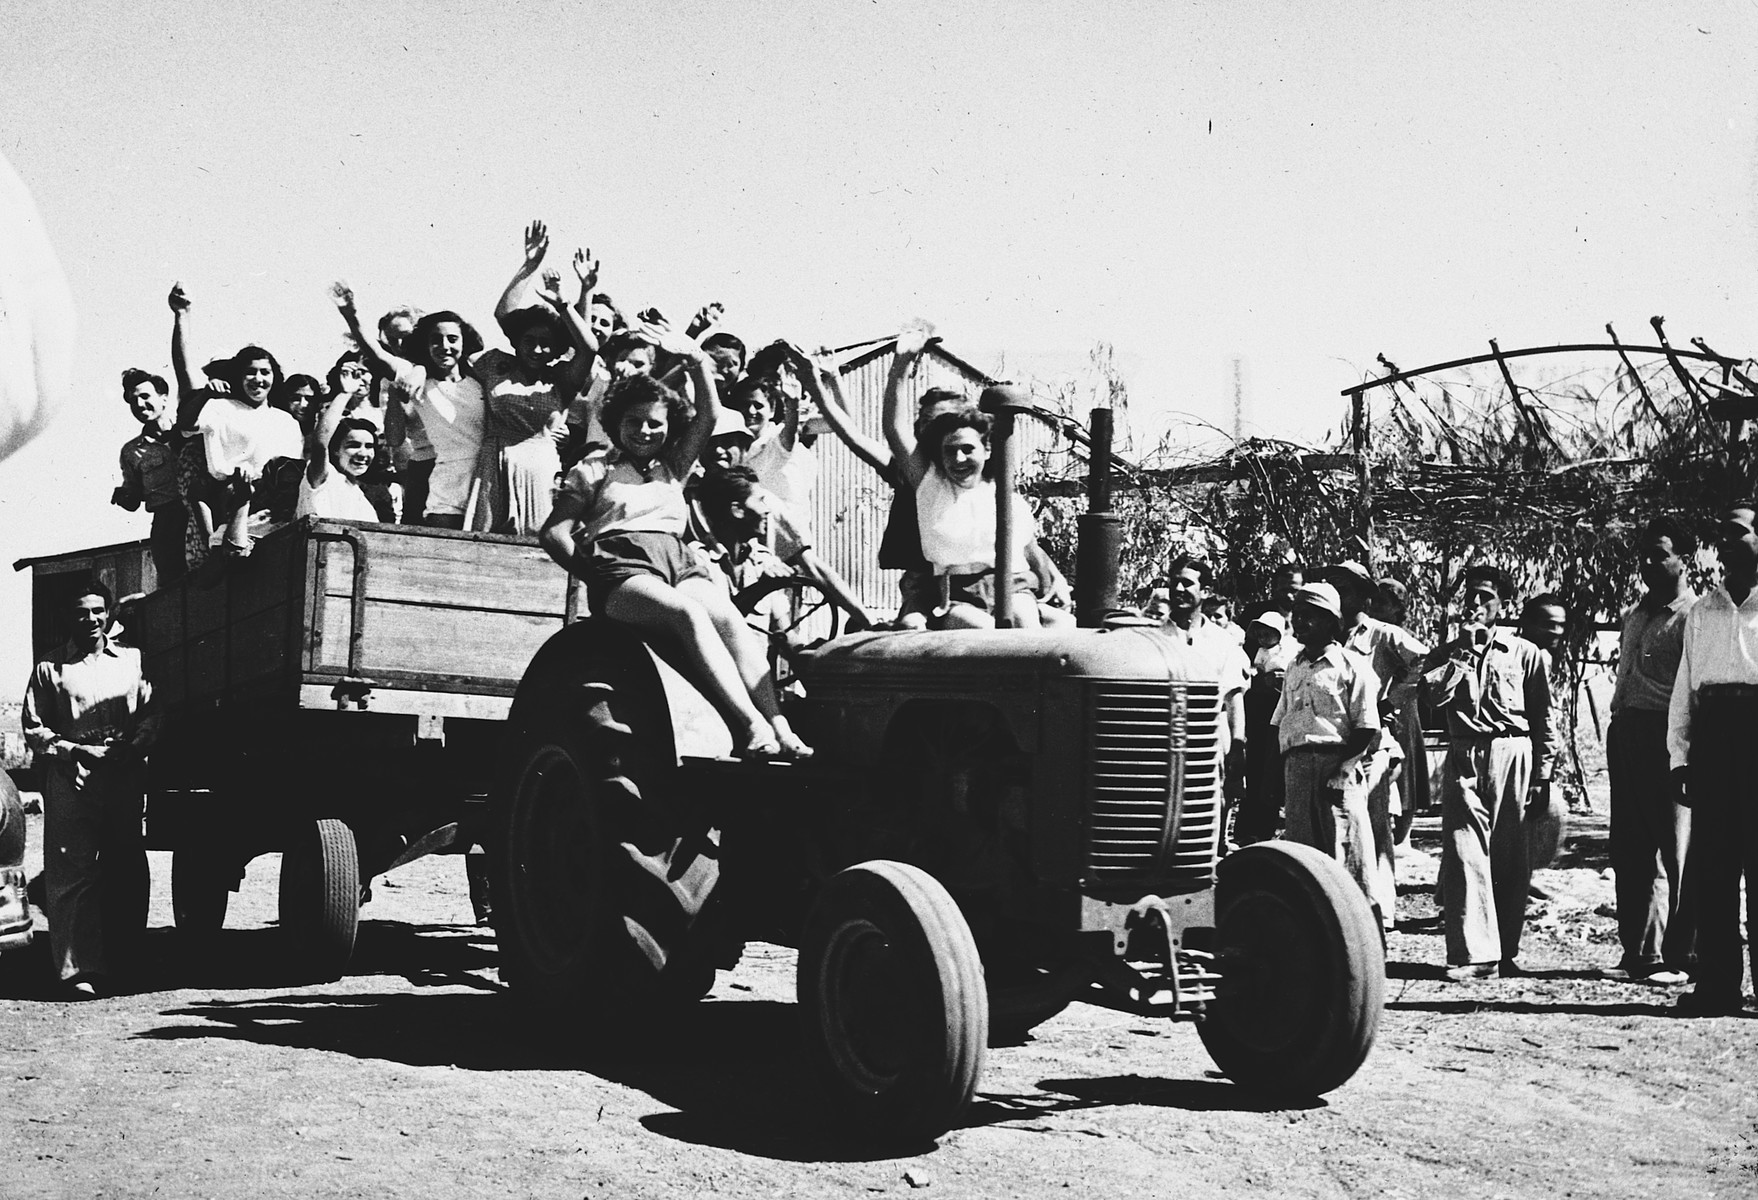 Teenage girls wave from a wagon pulled by a tractor in Tel Shachar.